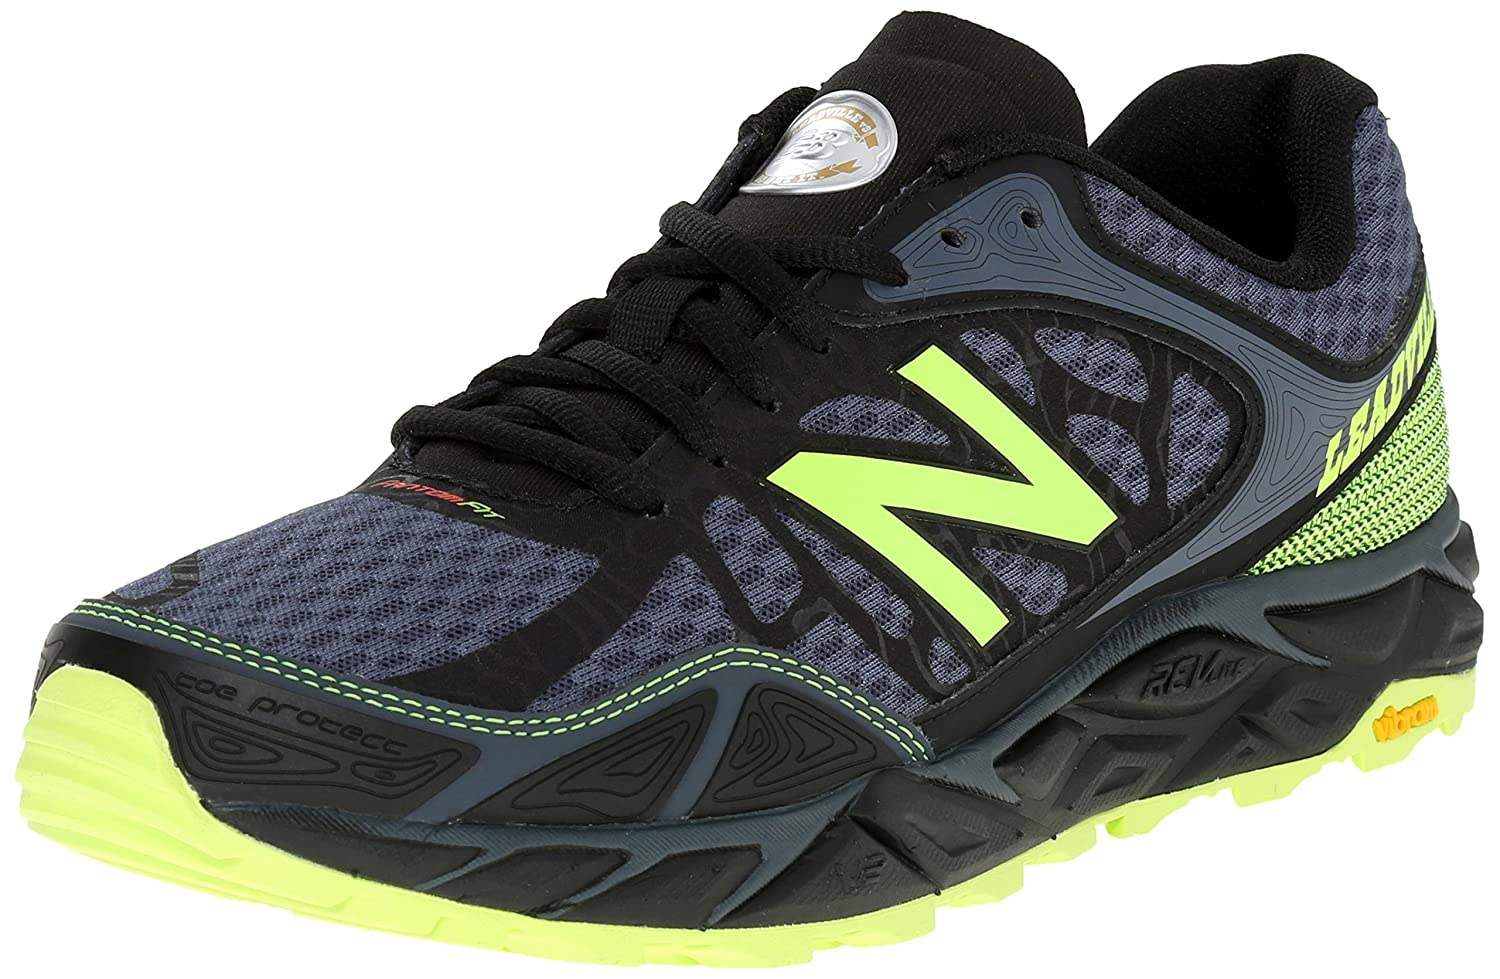 New Balance Leadville v3 bUGED9q7F